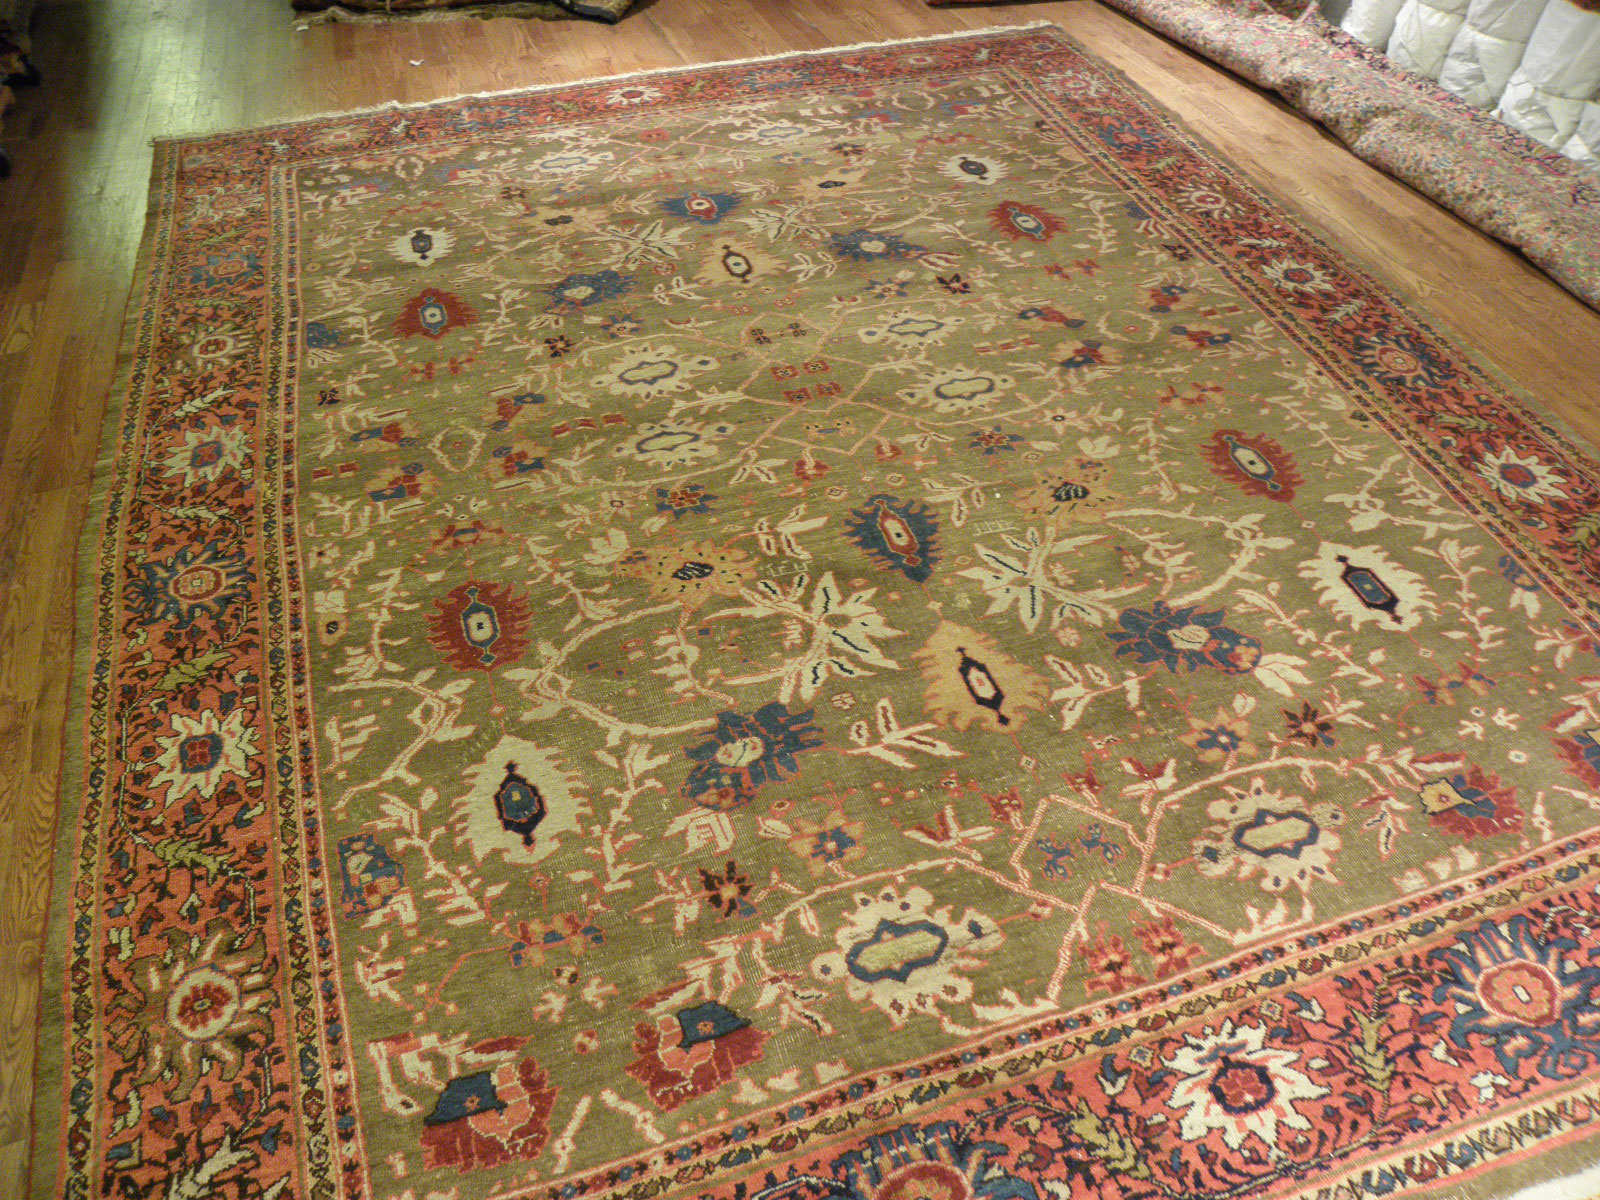 Antique sultan abad Carpet - # 6761